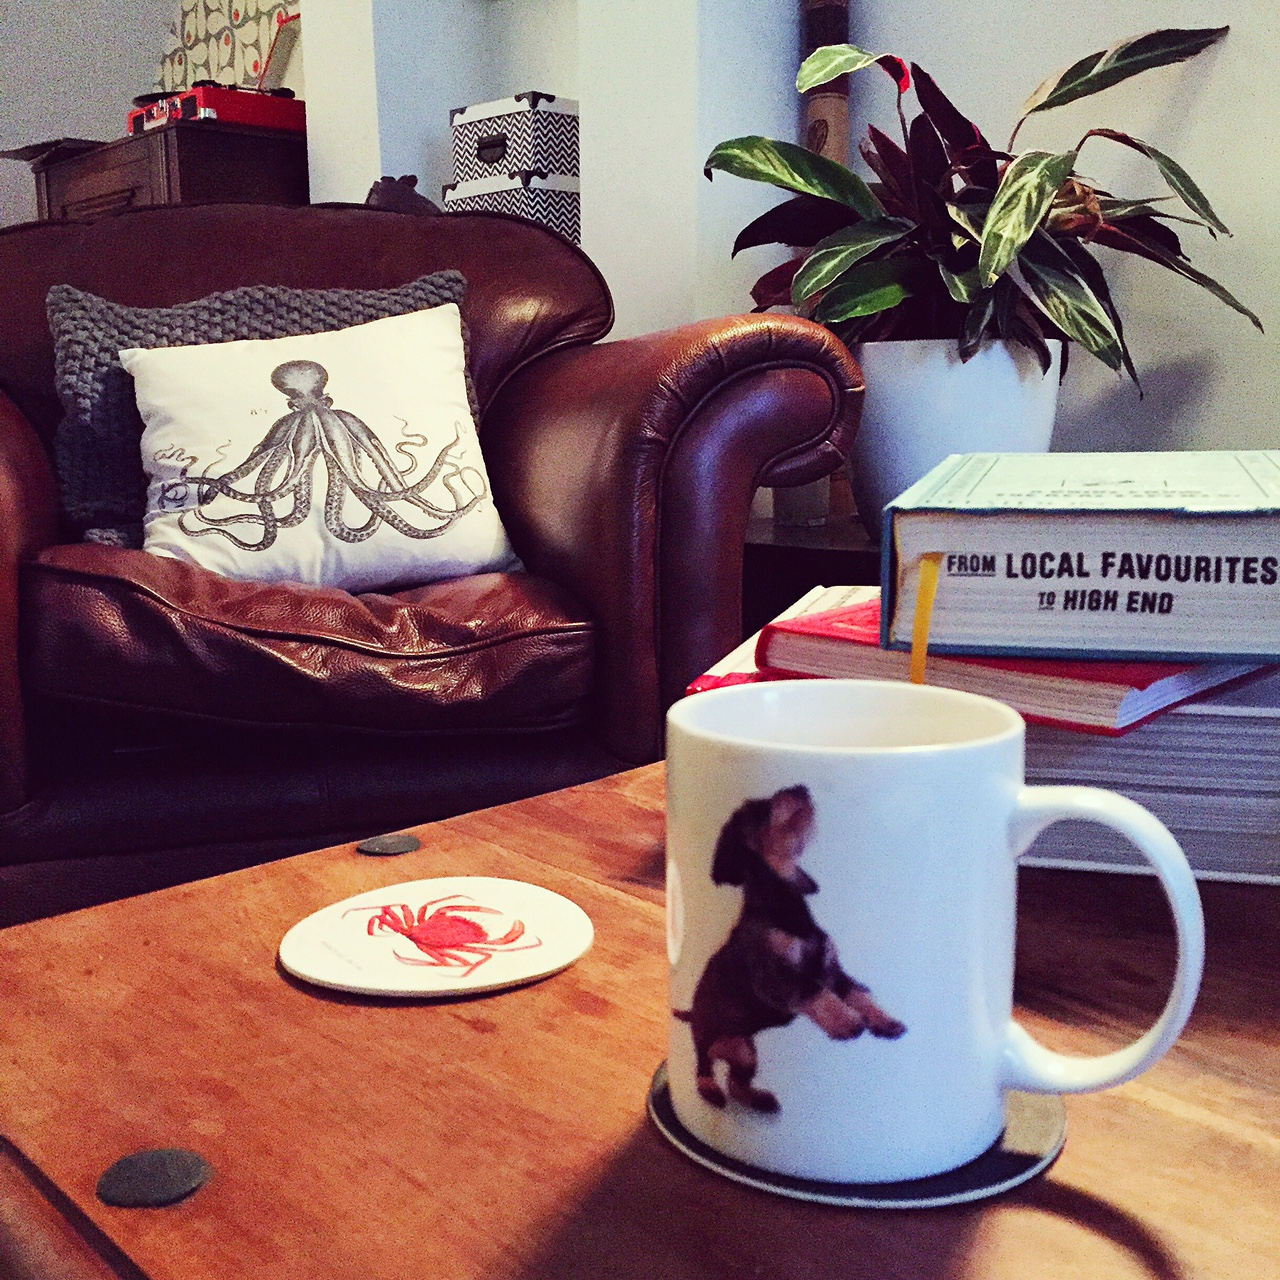 home_hm_retro_octopus_cushion_dachshund_mug.JPG